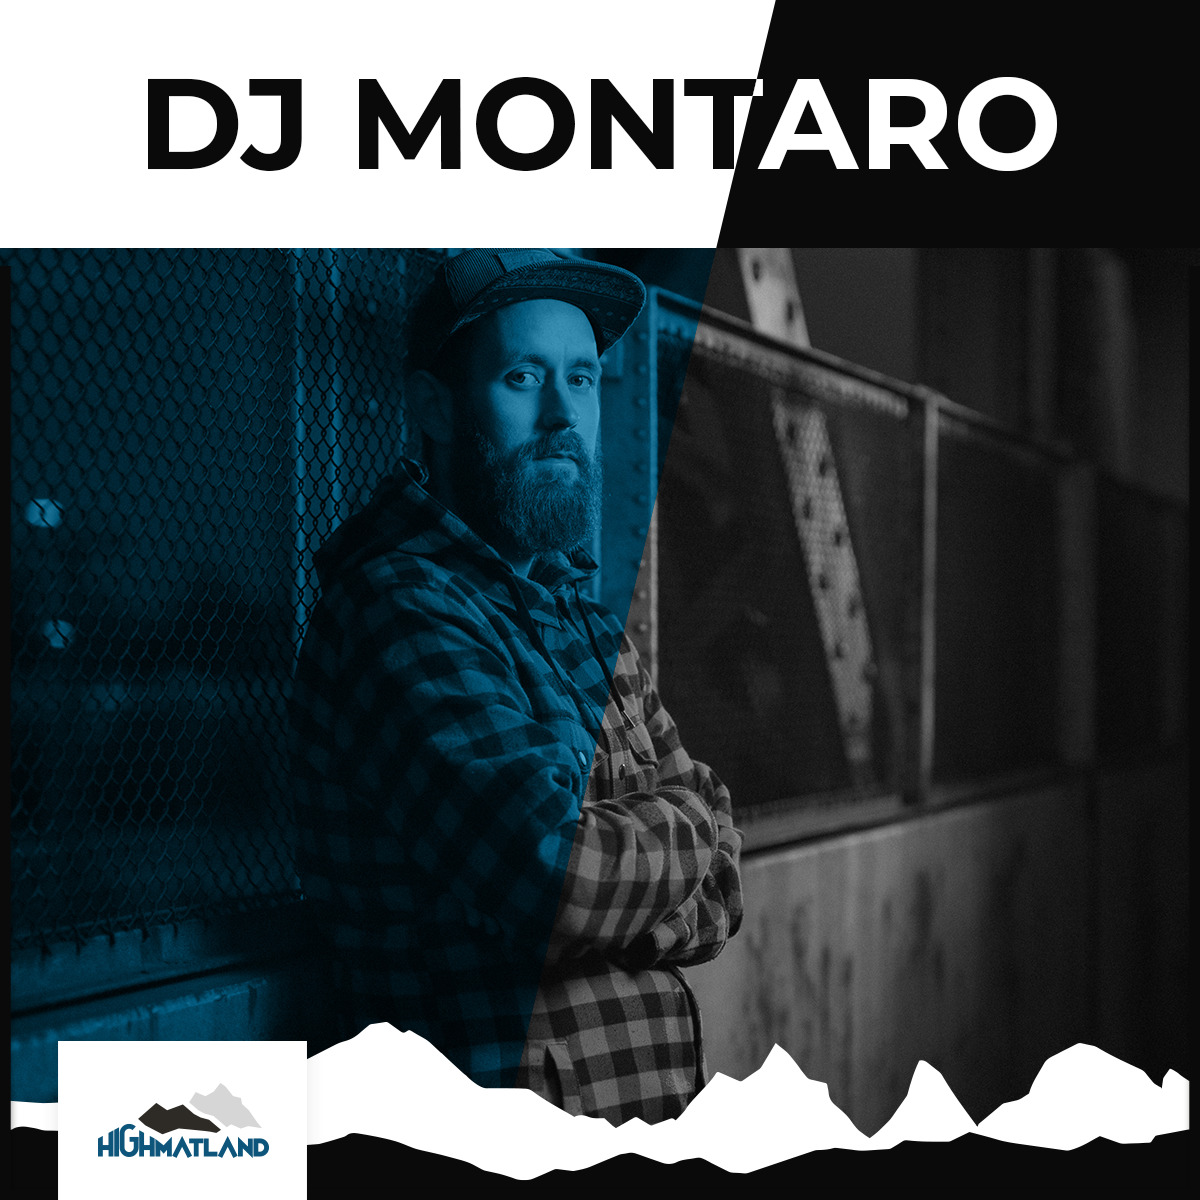 Dj Montaro Highmatland Open Air Hip Hop